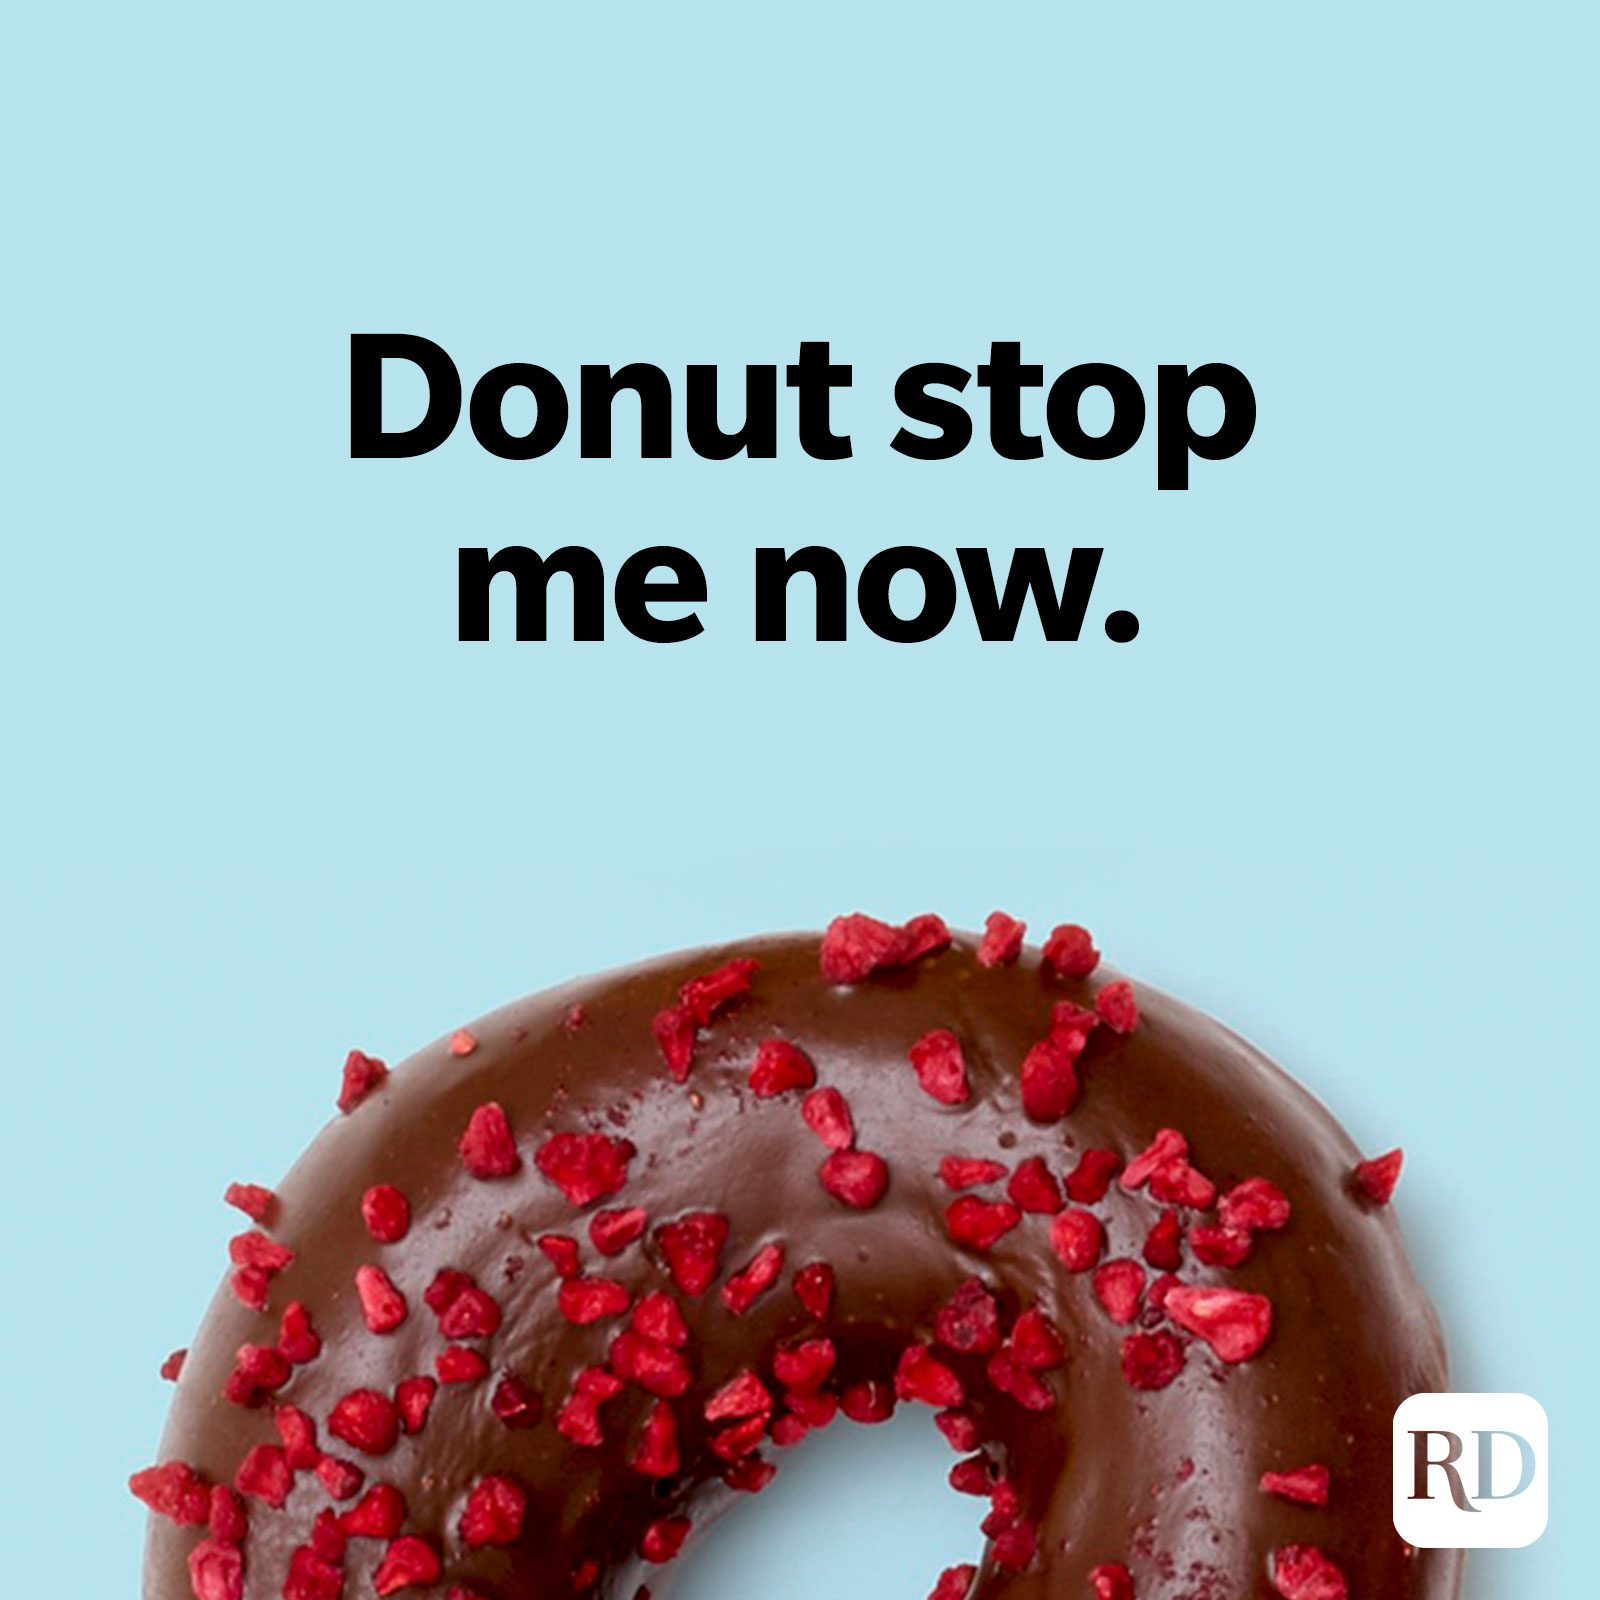 Donut stop me now.